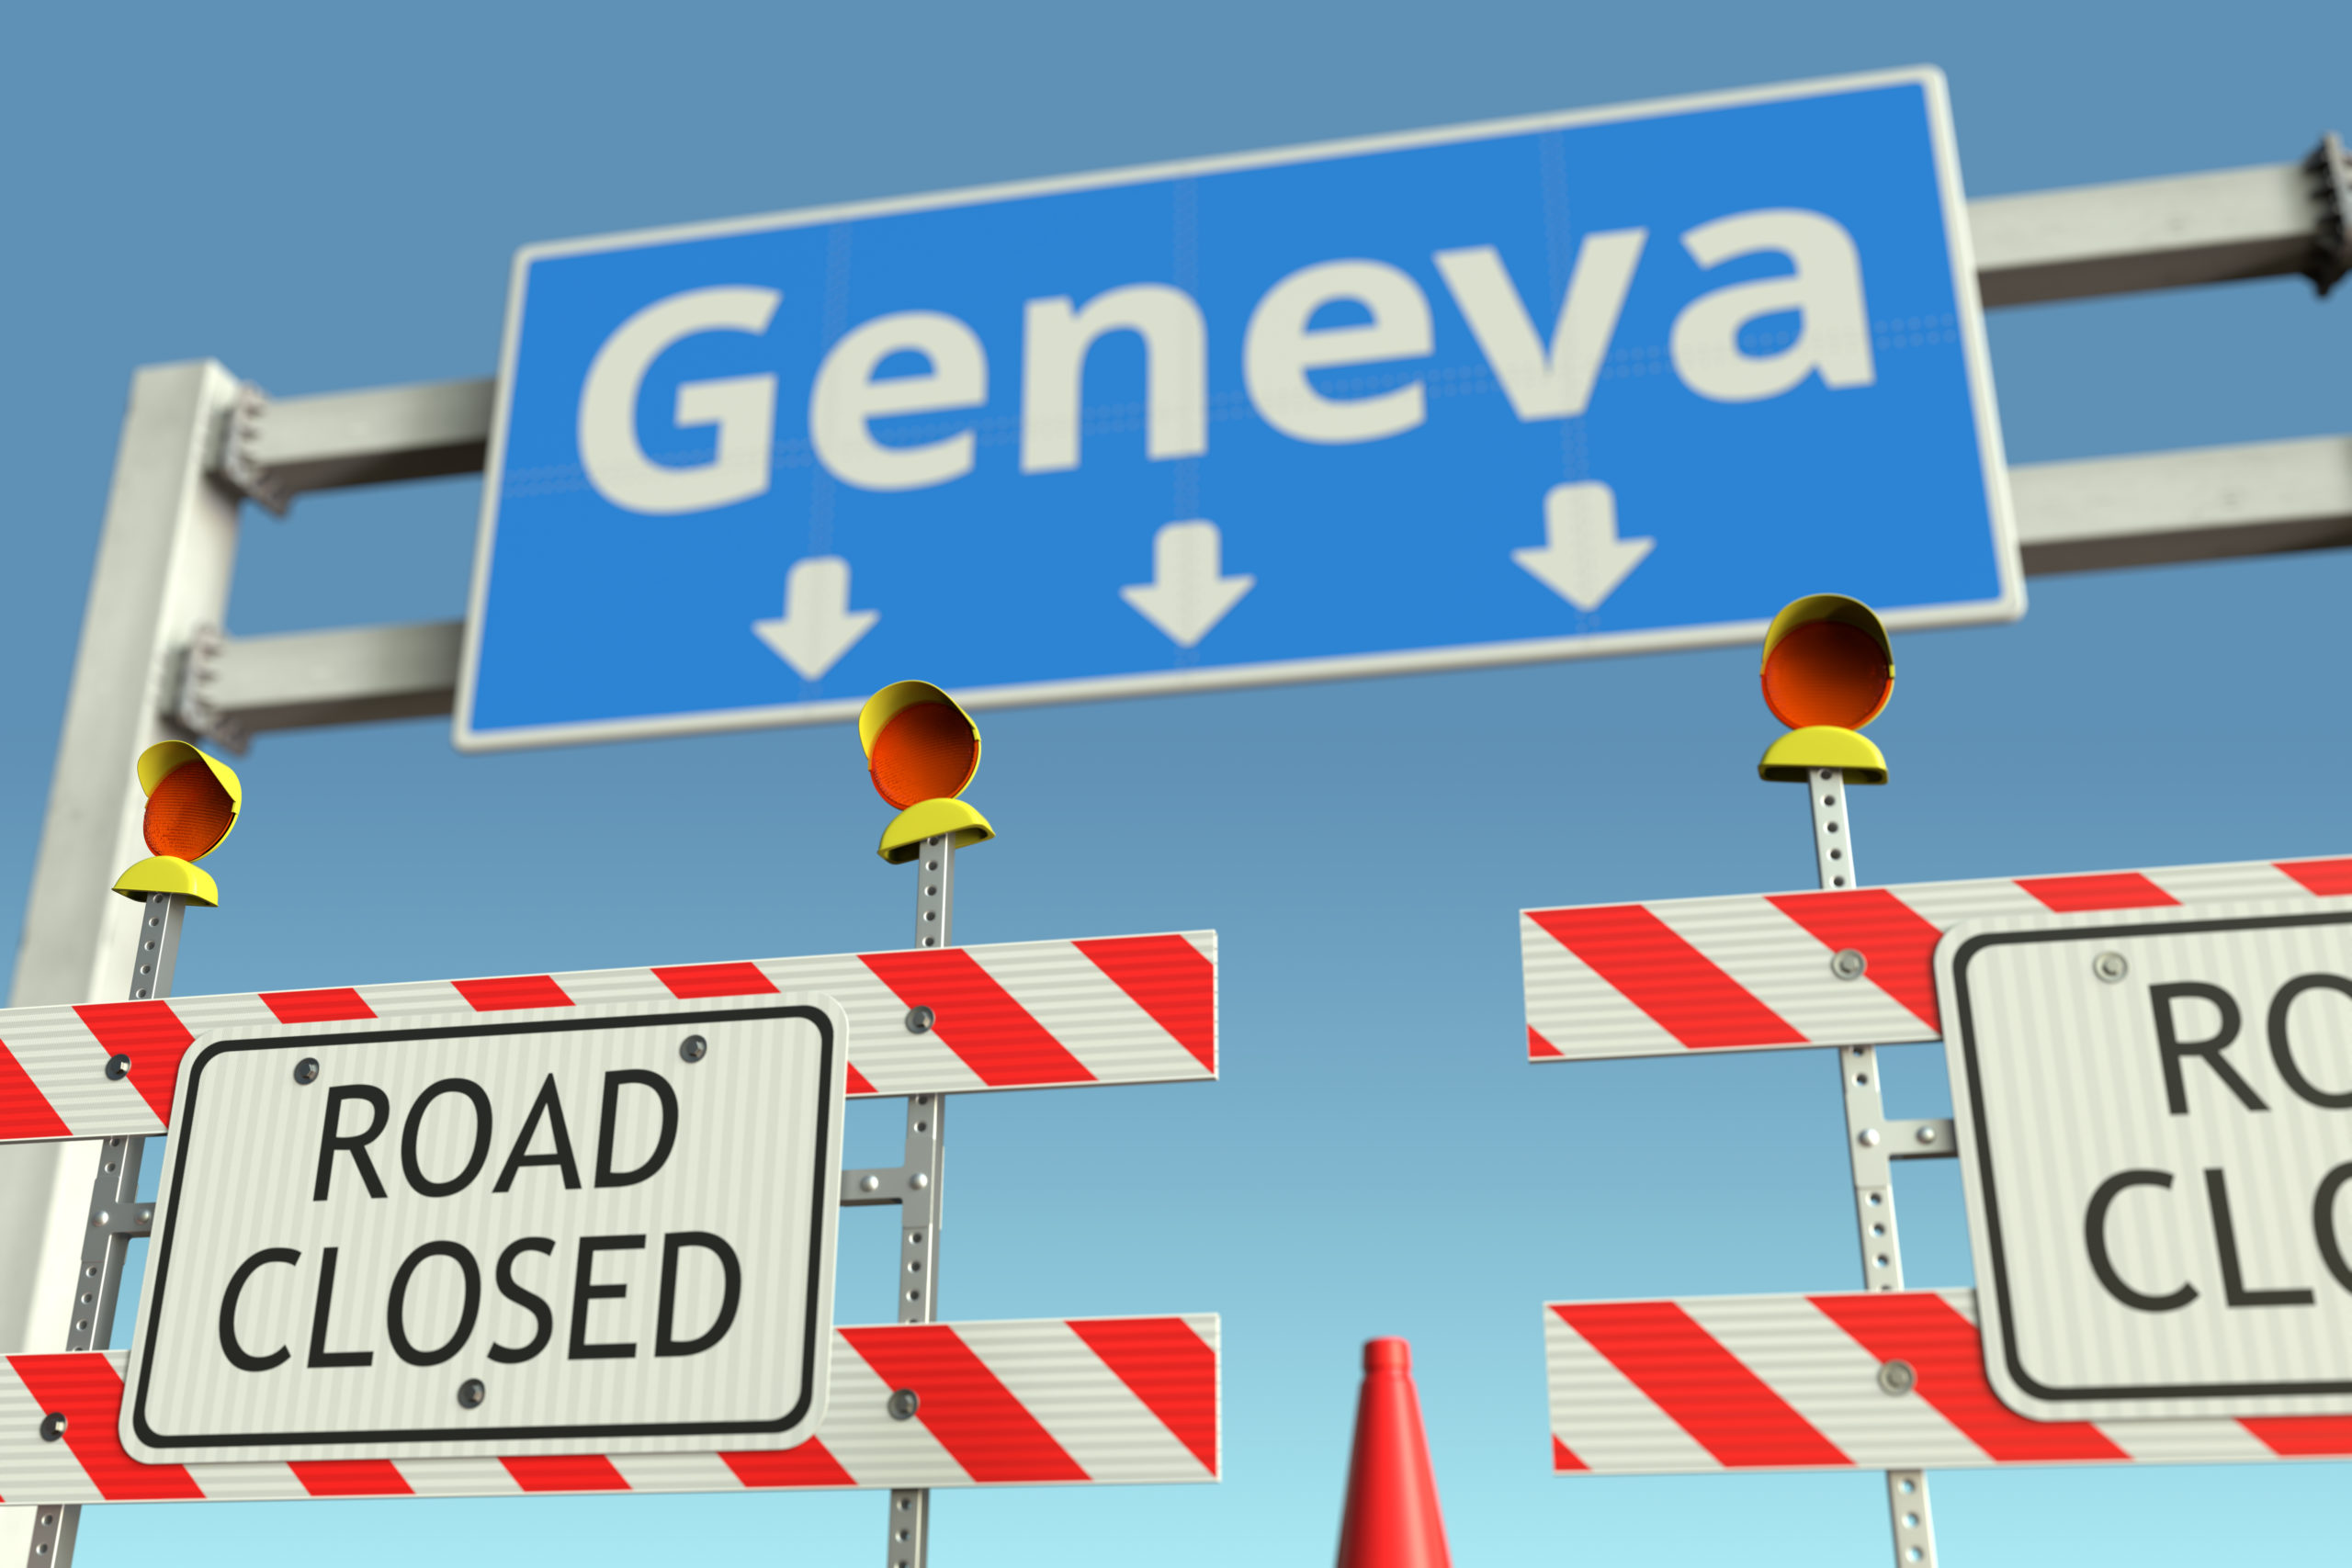 Roadblock near Geneva road sign. Coronavirus disease quarantine or lockdown in Switzerland conceptual